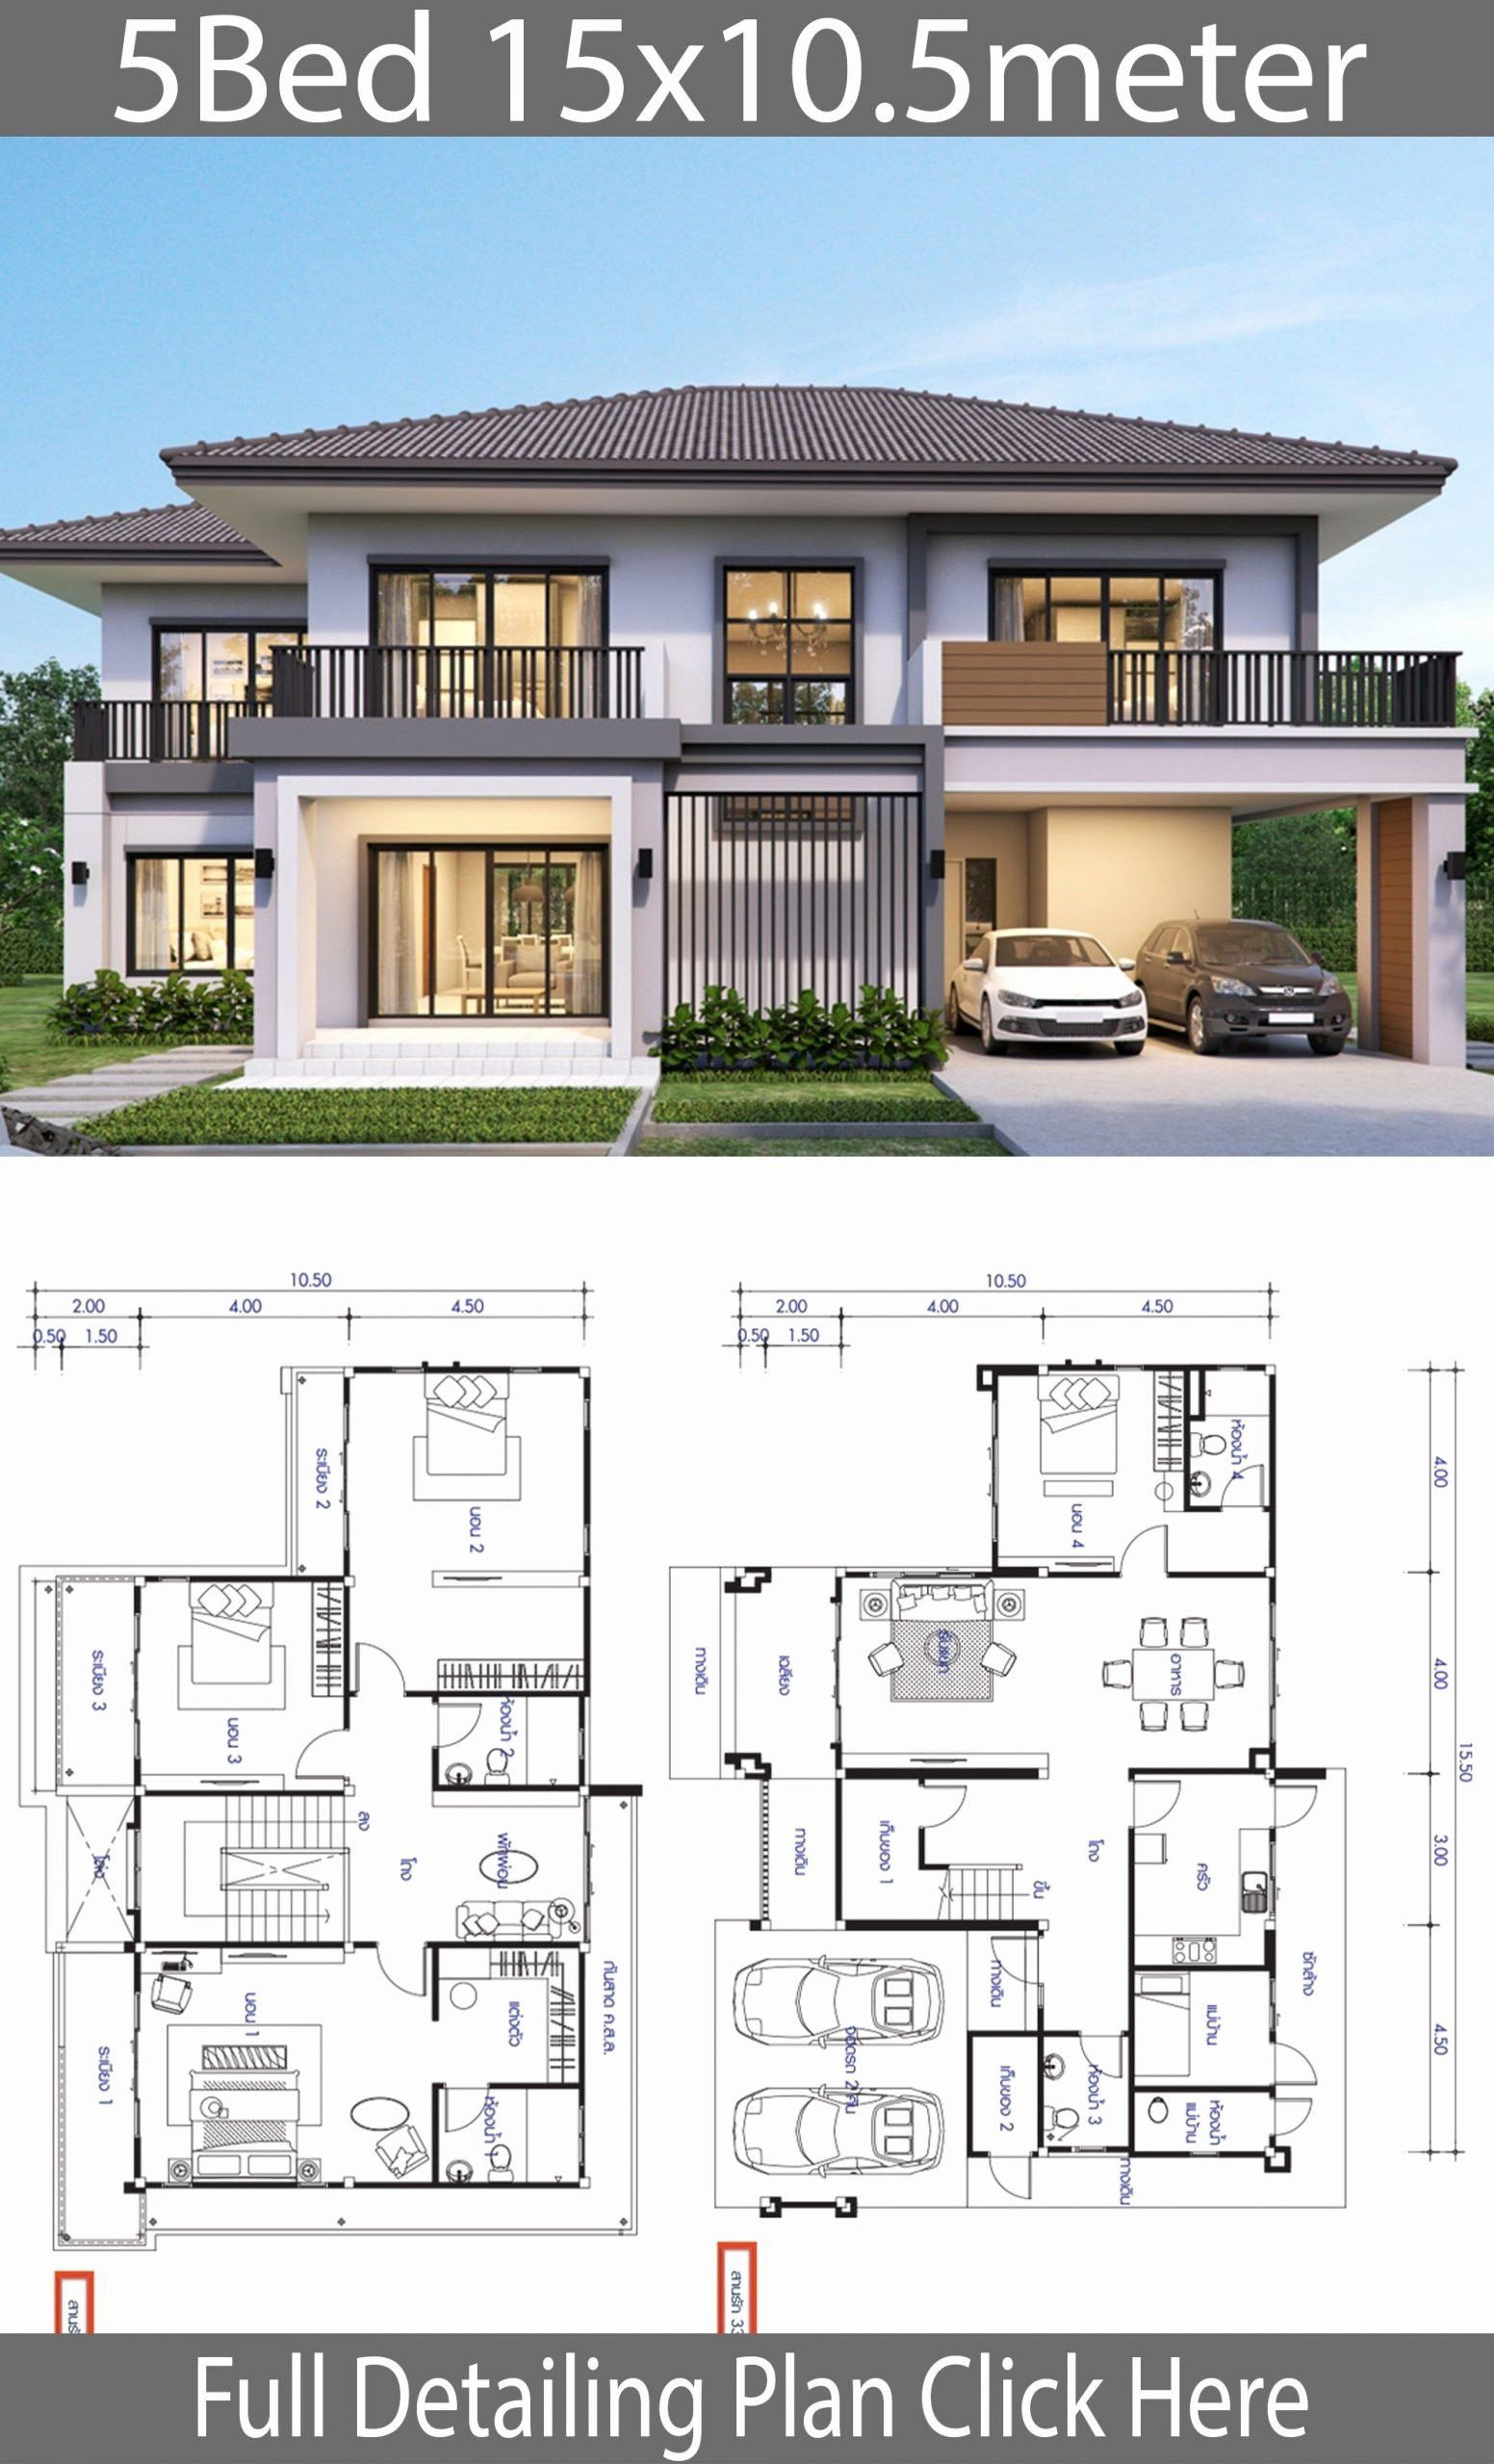 5 Bedroom Bungalow House Plans Beautiful House Design Plan Architectural House Plans Bungalow House Plans Model House Plan